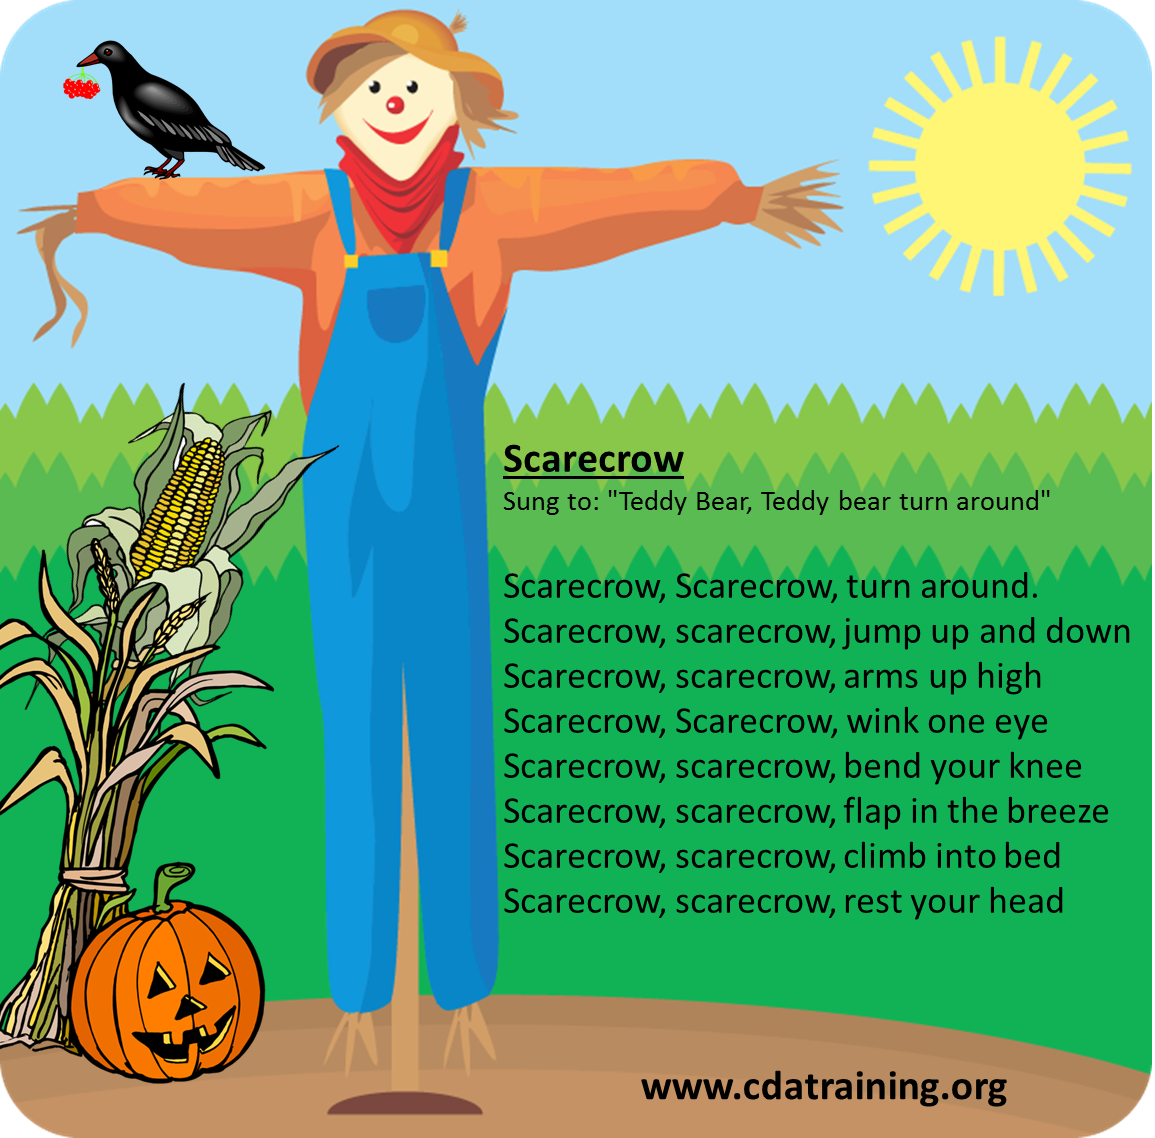 Child Care Basics Resource Blog Scarecrow Songs